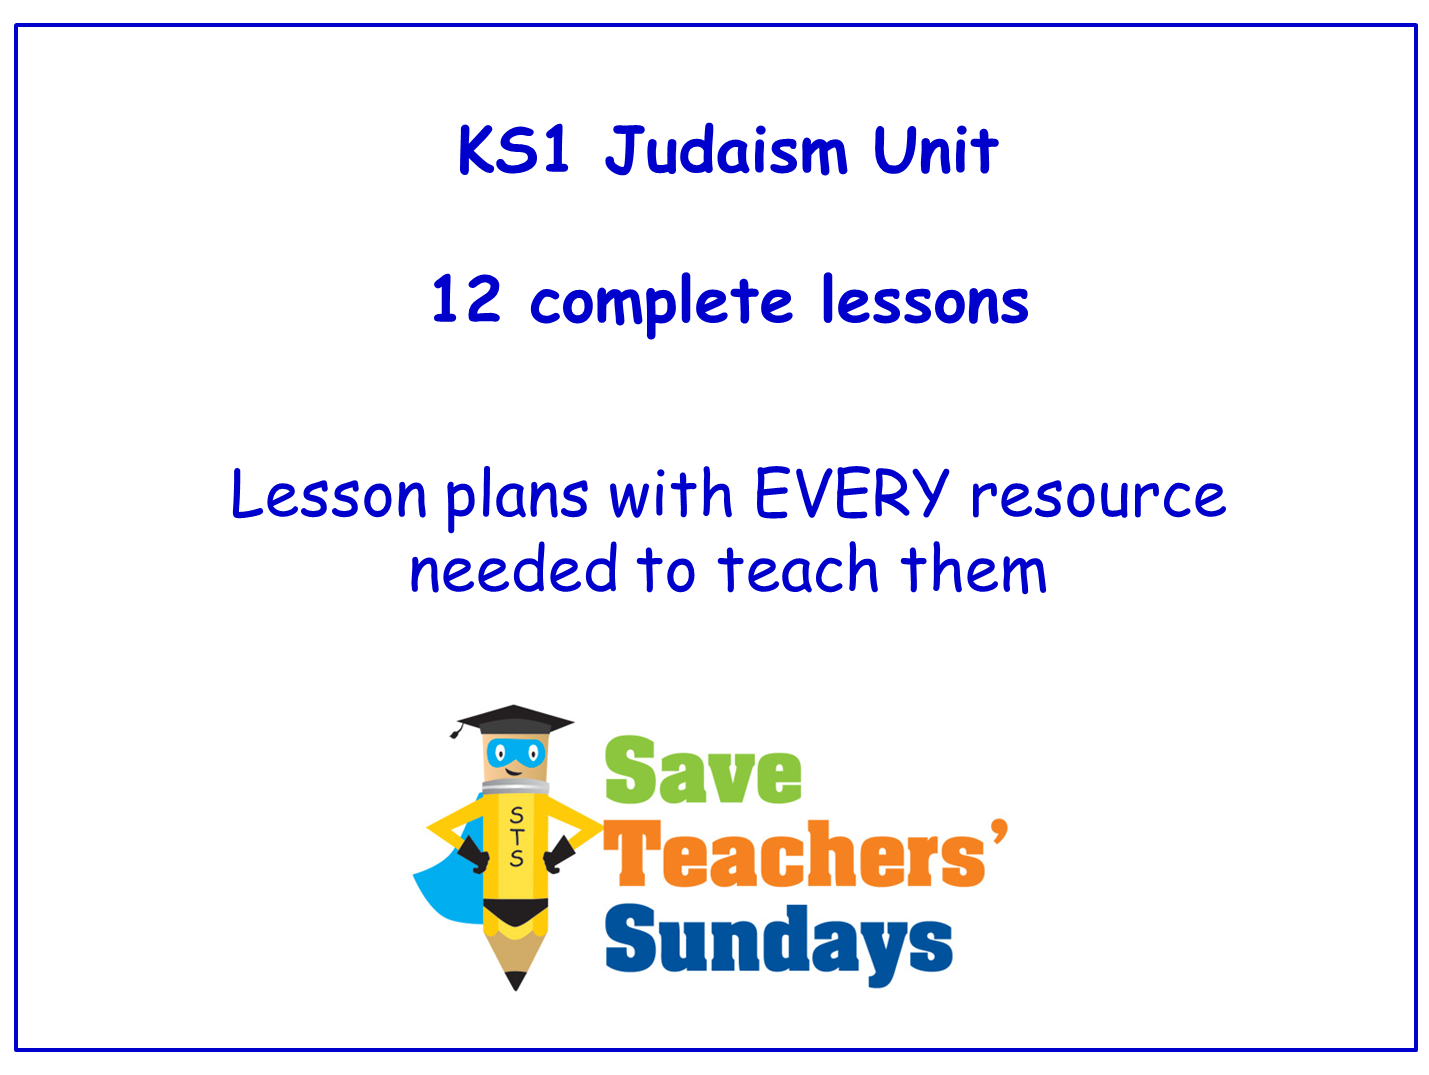 Passover ks1 lesson plan and worksheets by saveteacherssundays passover ks1 lesson plan and worksheets by saveteacherssundays teaching resources tes robcynllc Image collections